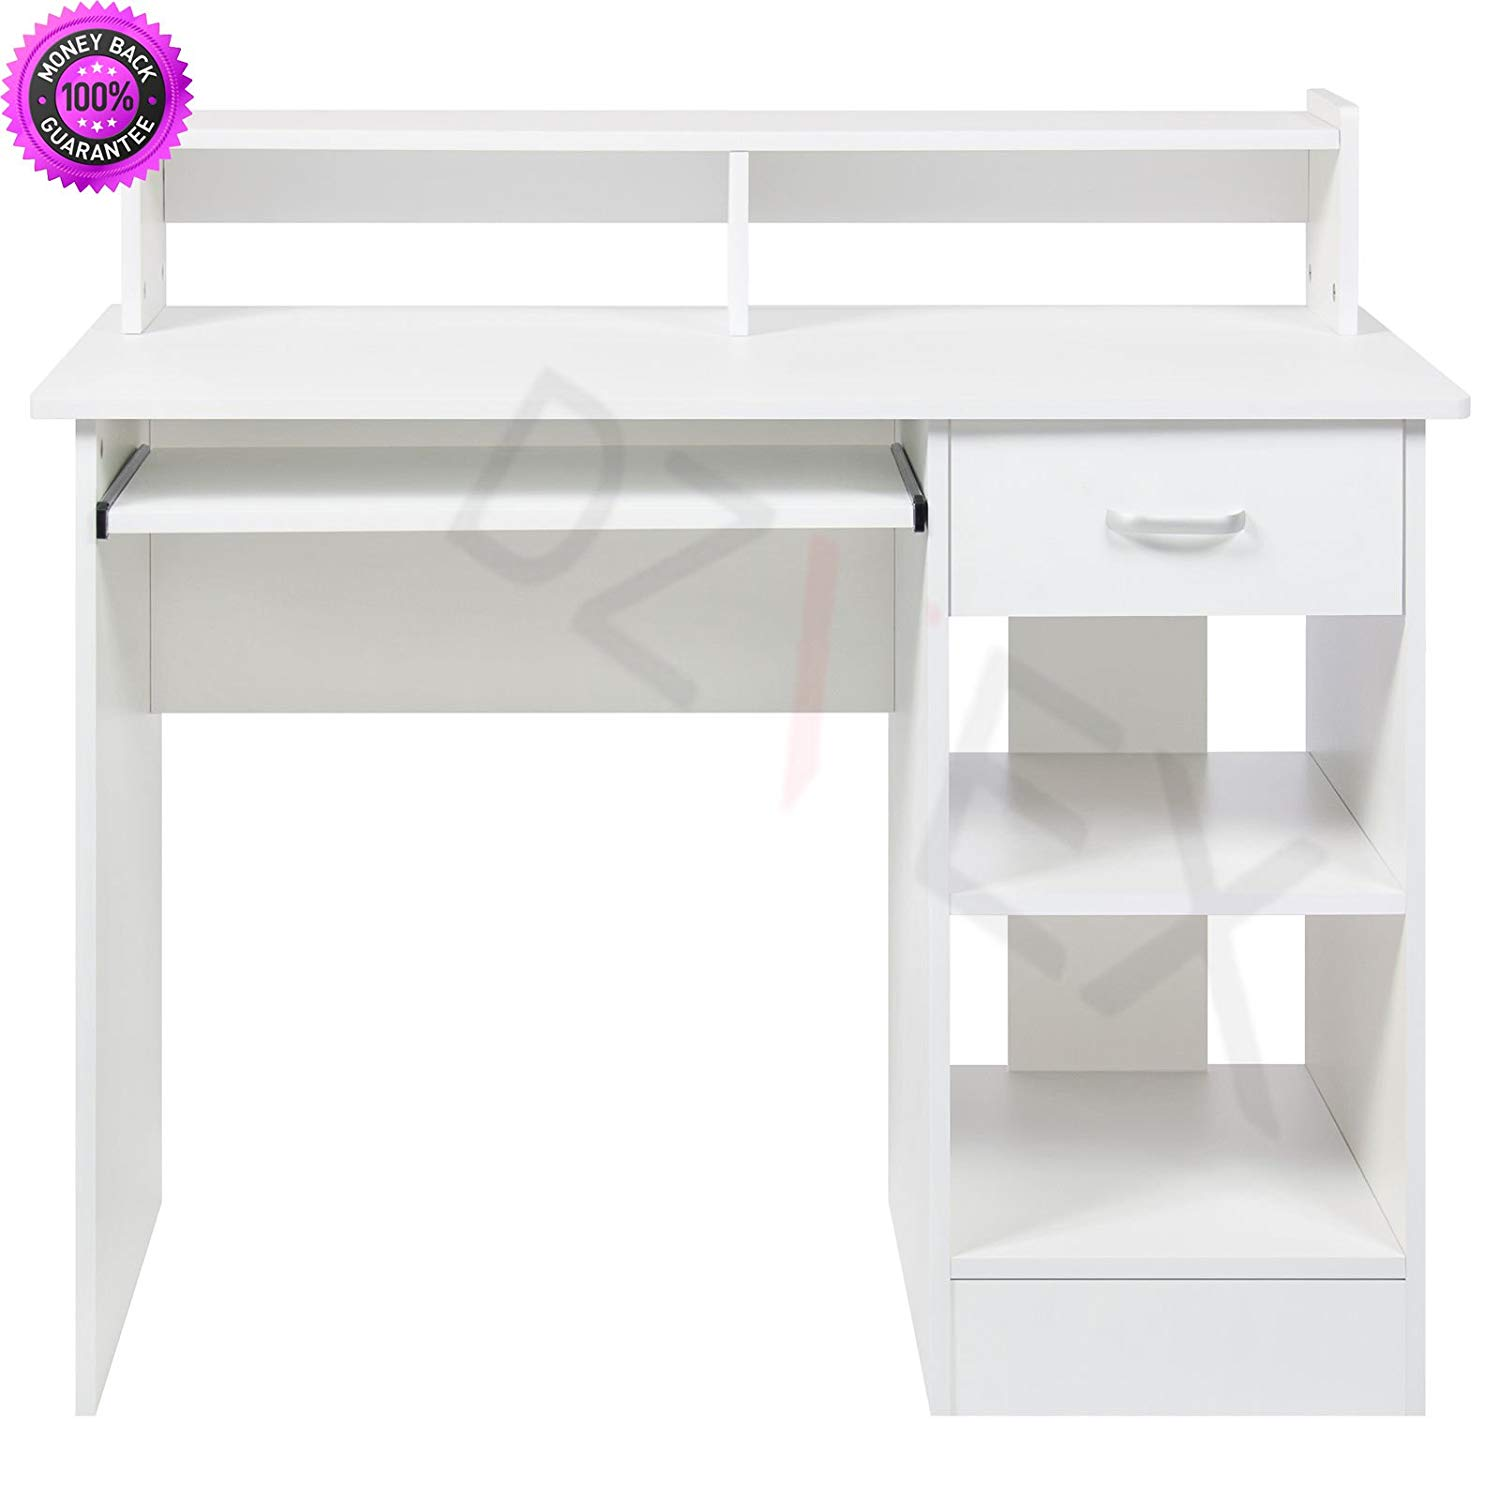 DzVeX_Computer Desk Home Laptop Table College Home Office Furniture Work Station White And home office desk home office furniture collections modular home office furniture office furniture